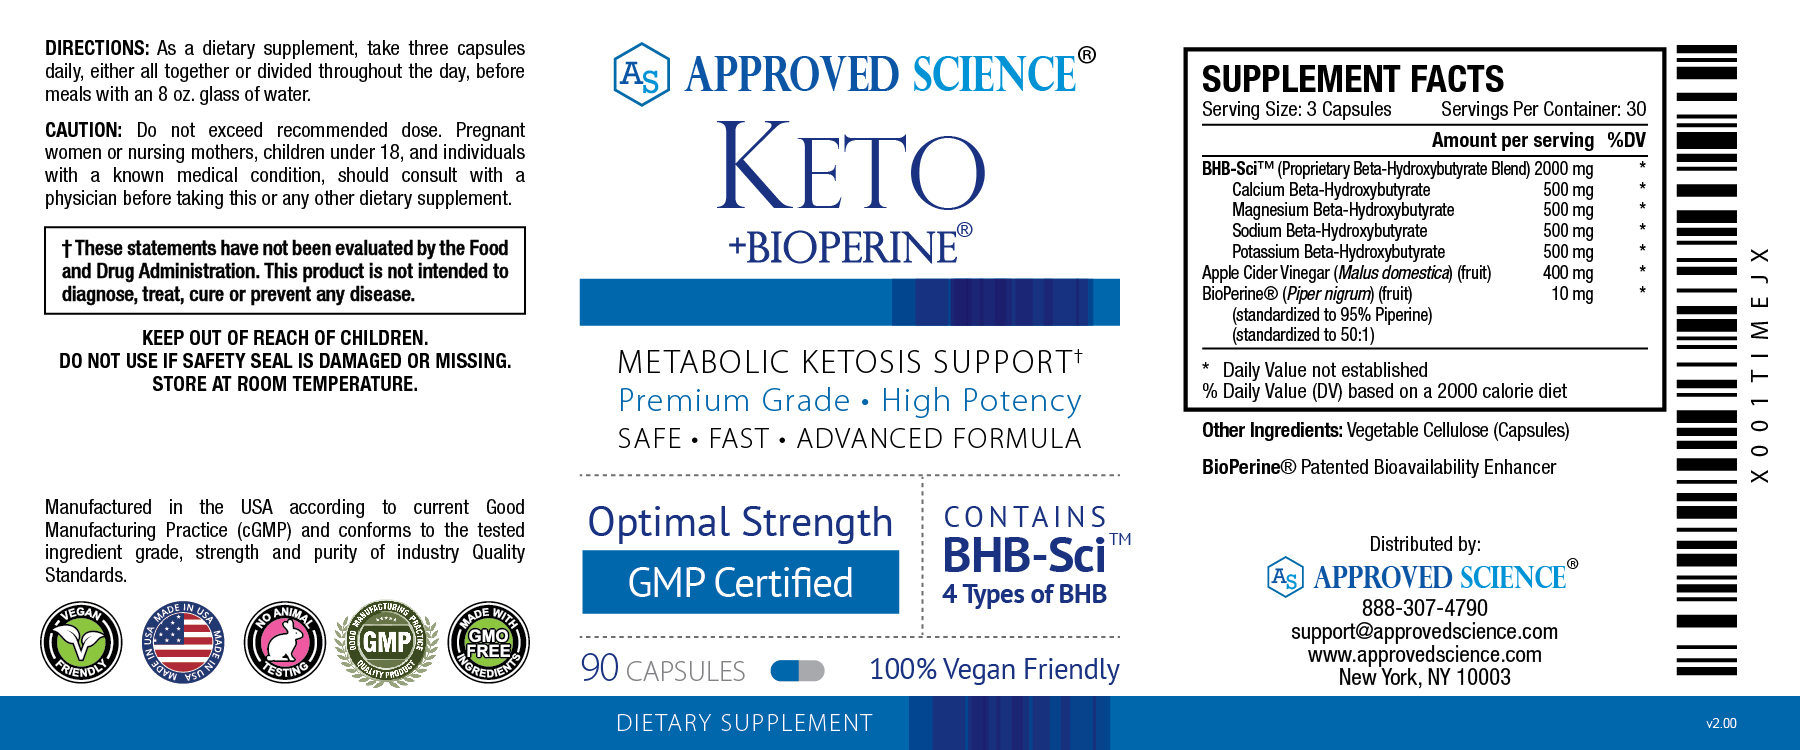 Approved Science Keto Supplement Facts